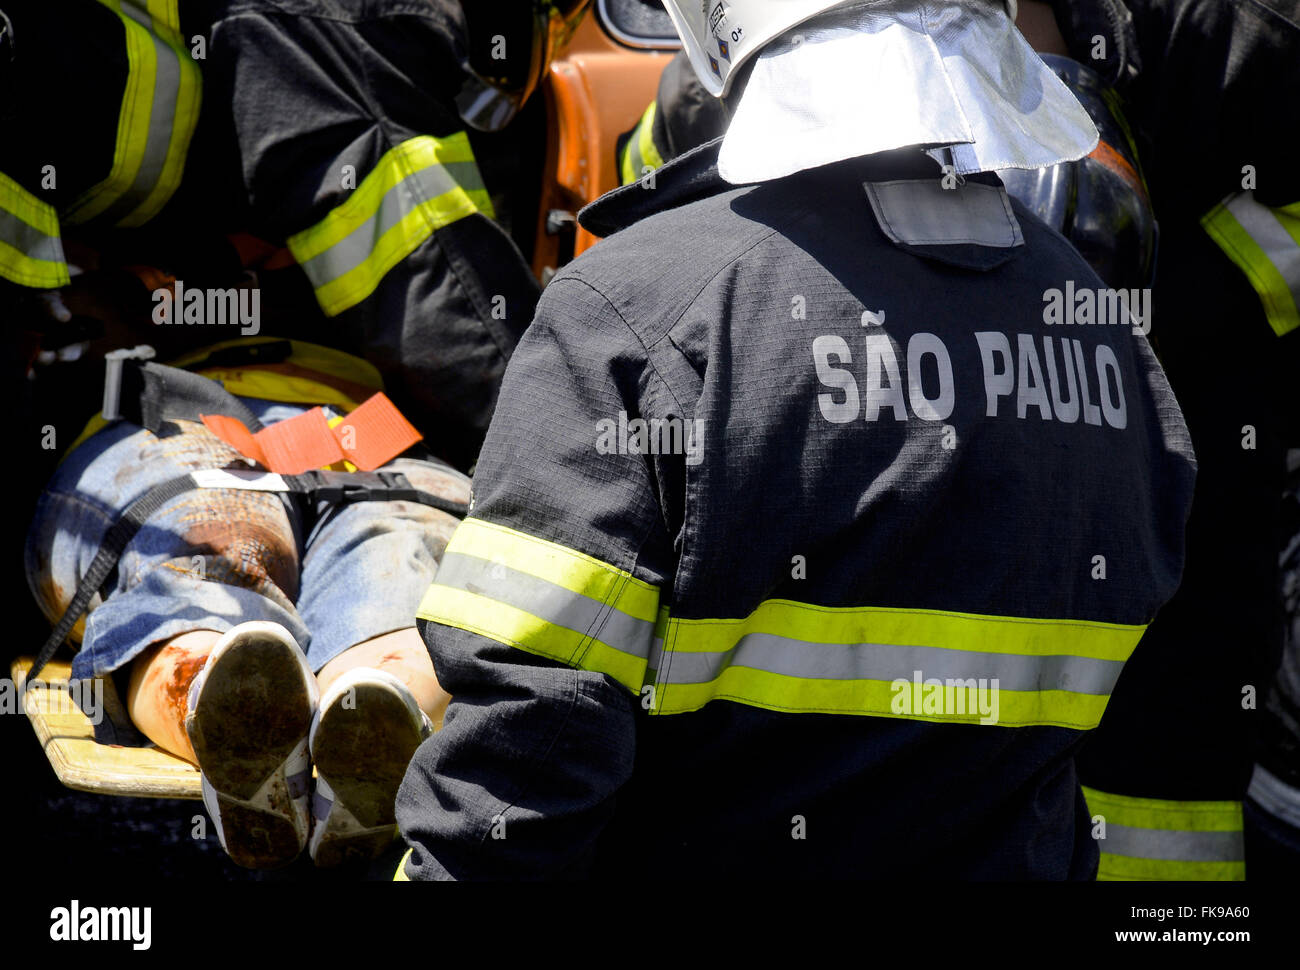 Workers injured person aiding in traffic in the capital - Stock Image